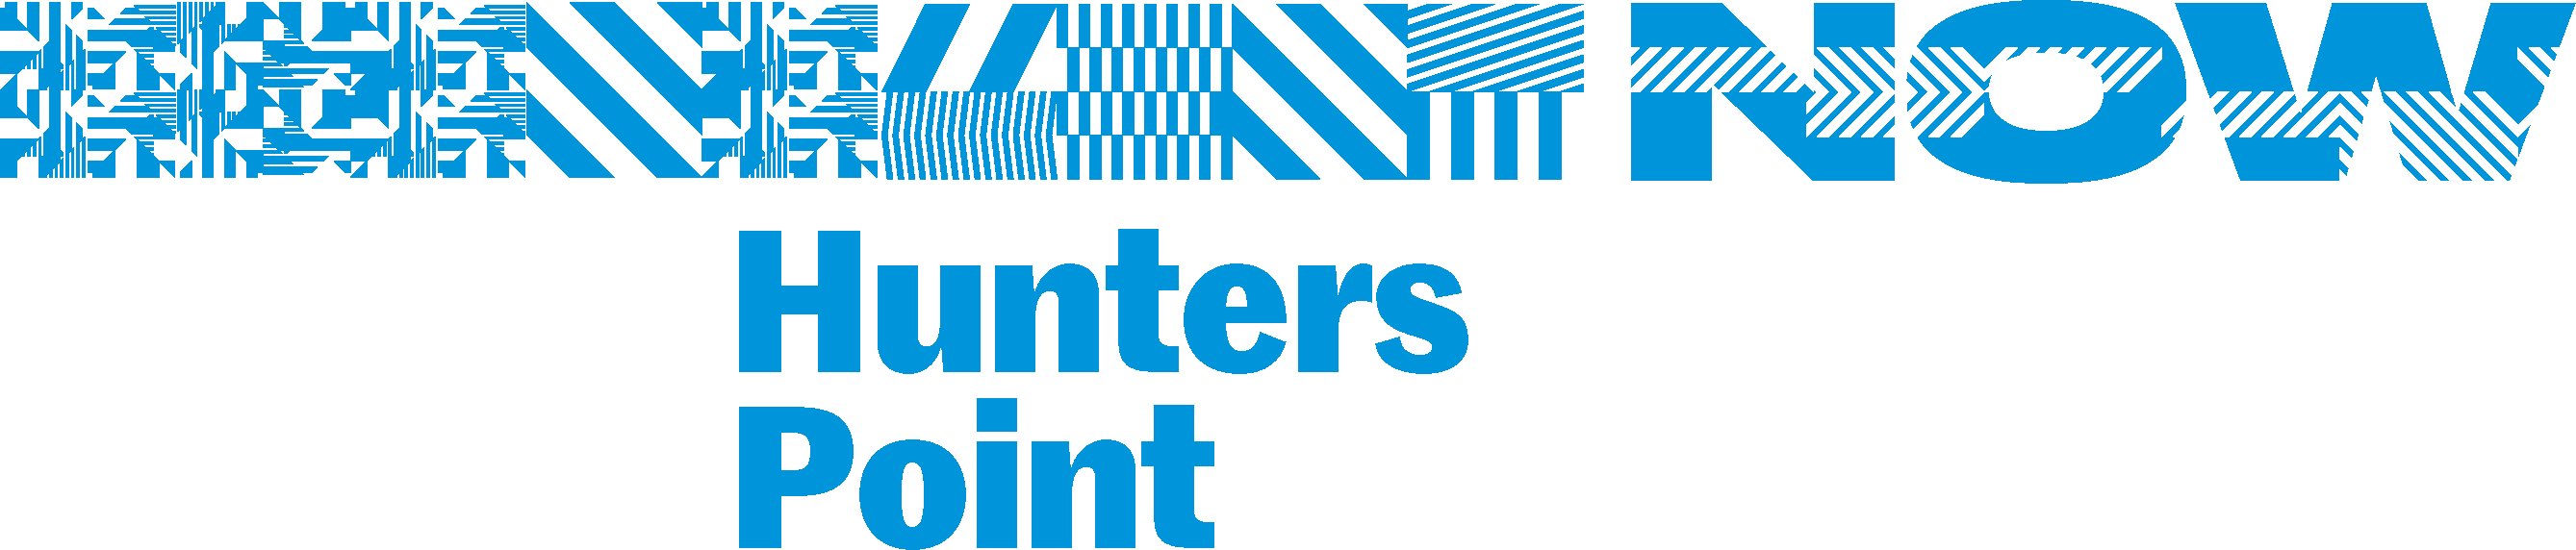 NOW Hunters Point logo